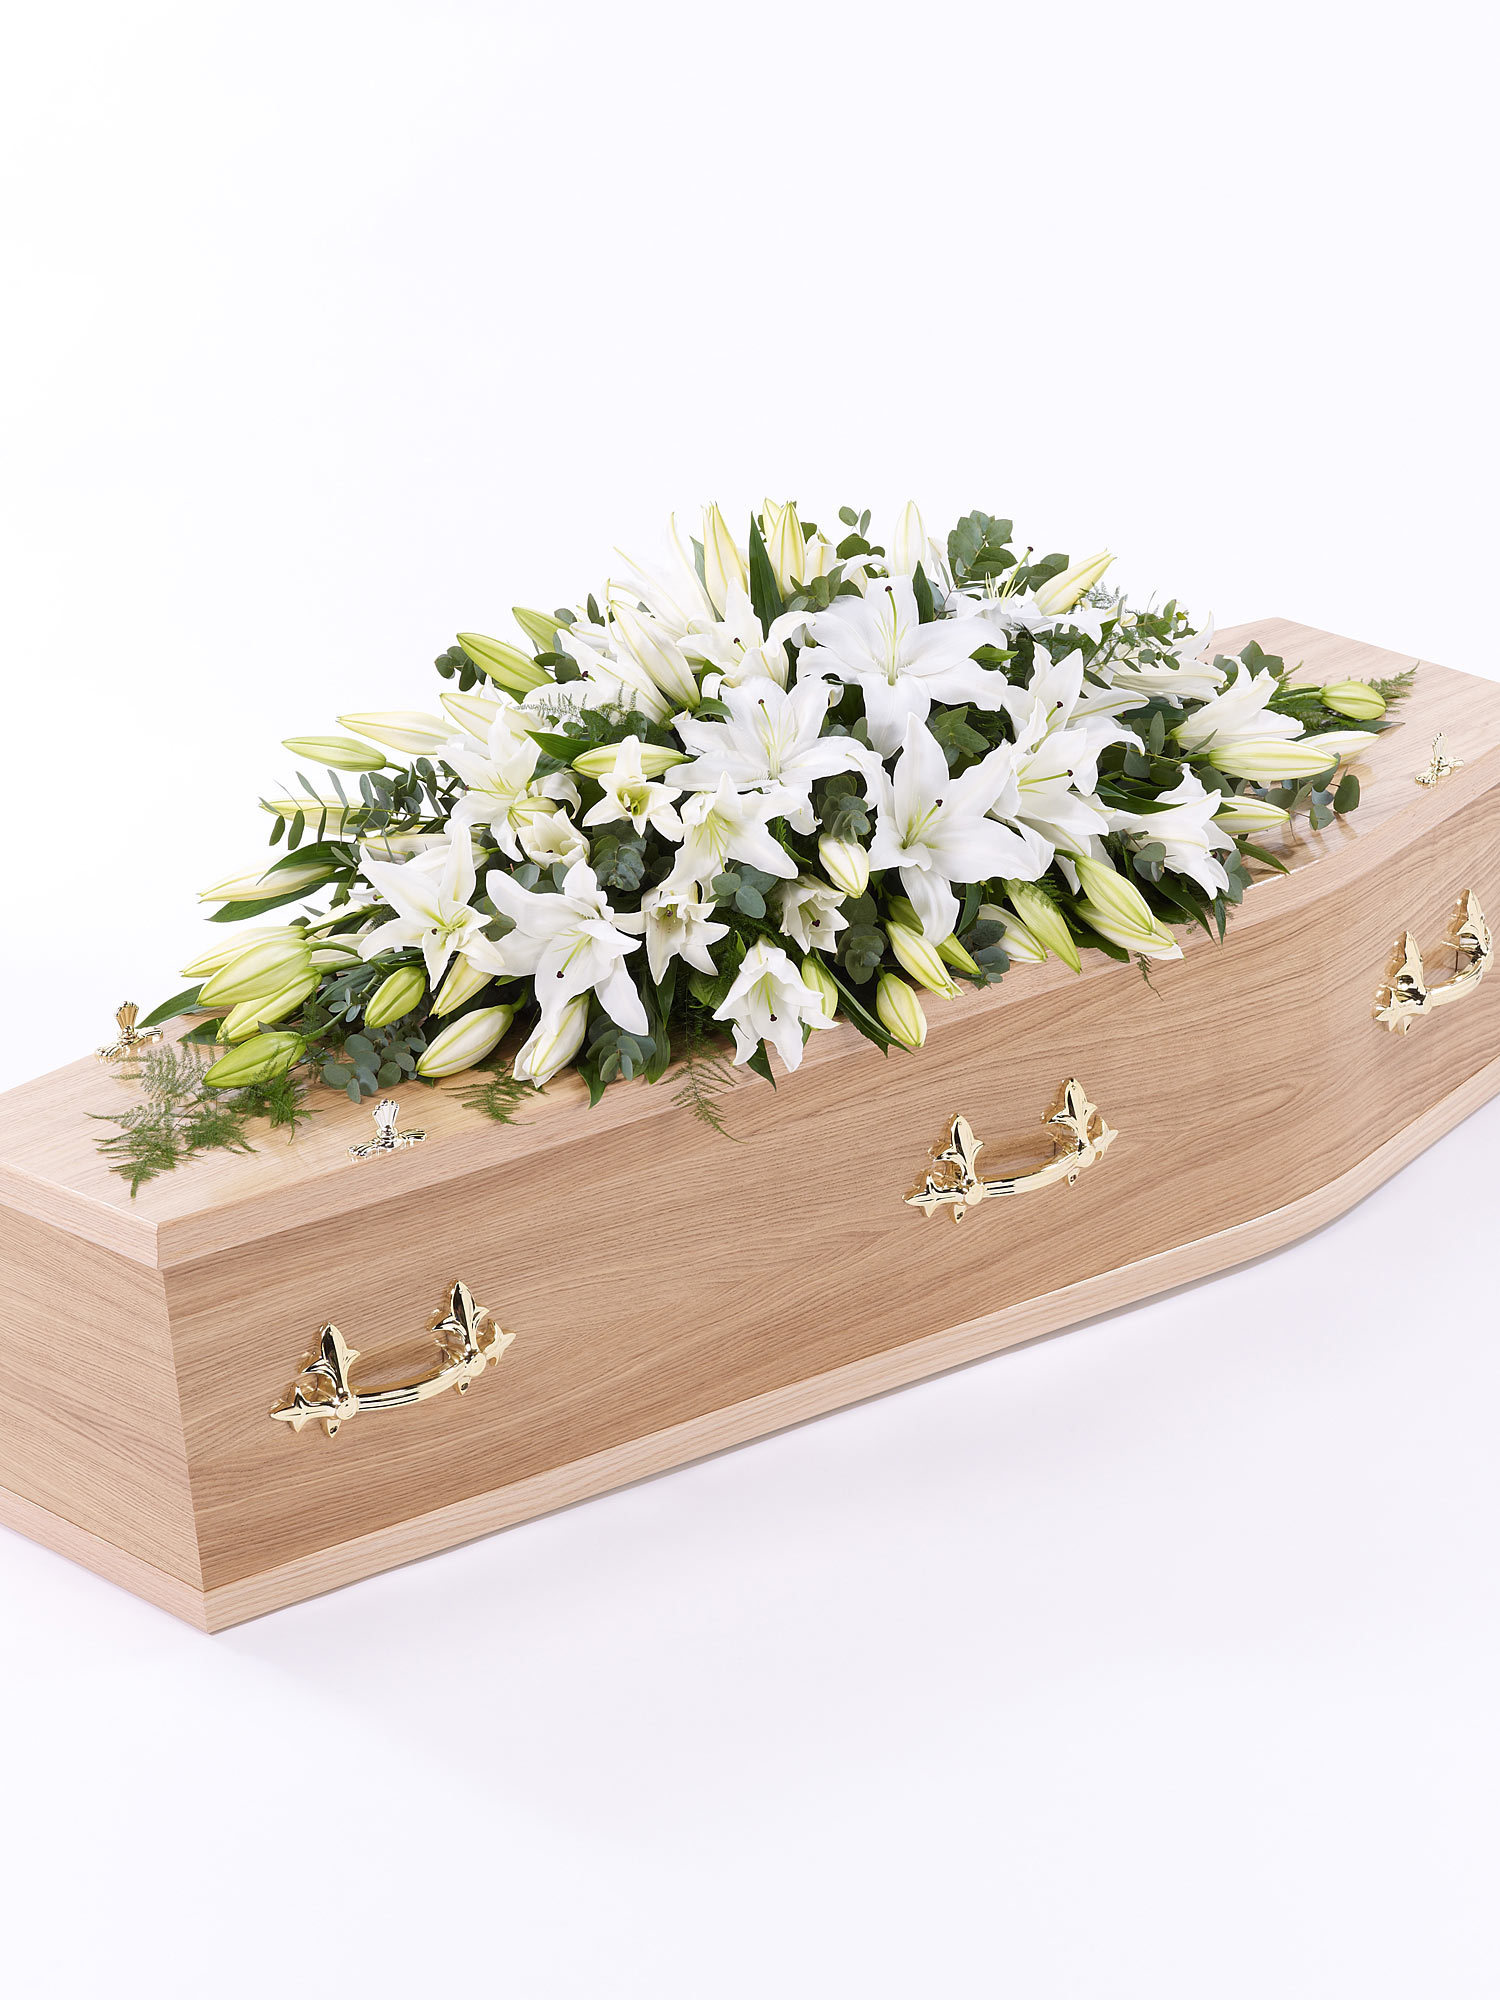 A coffin spray which is used to decorate coffins